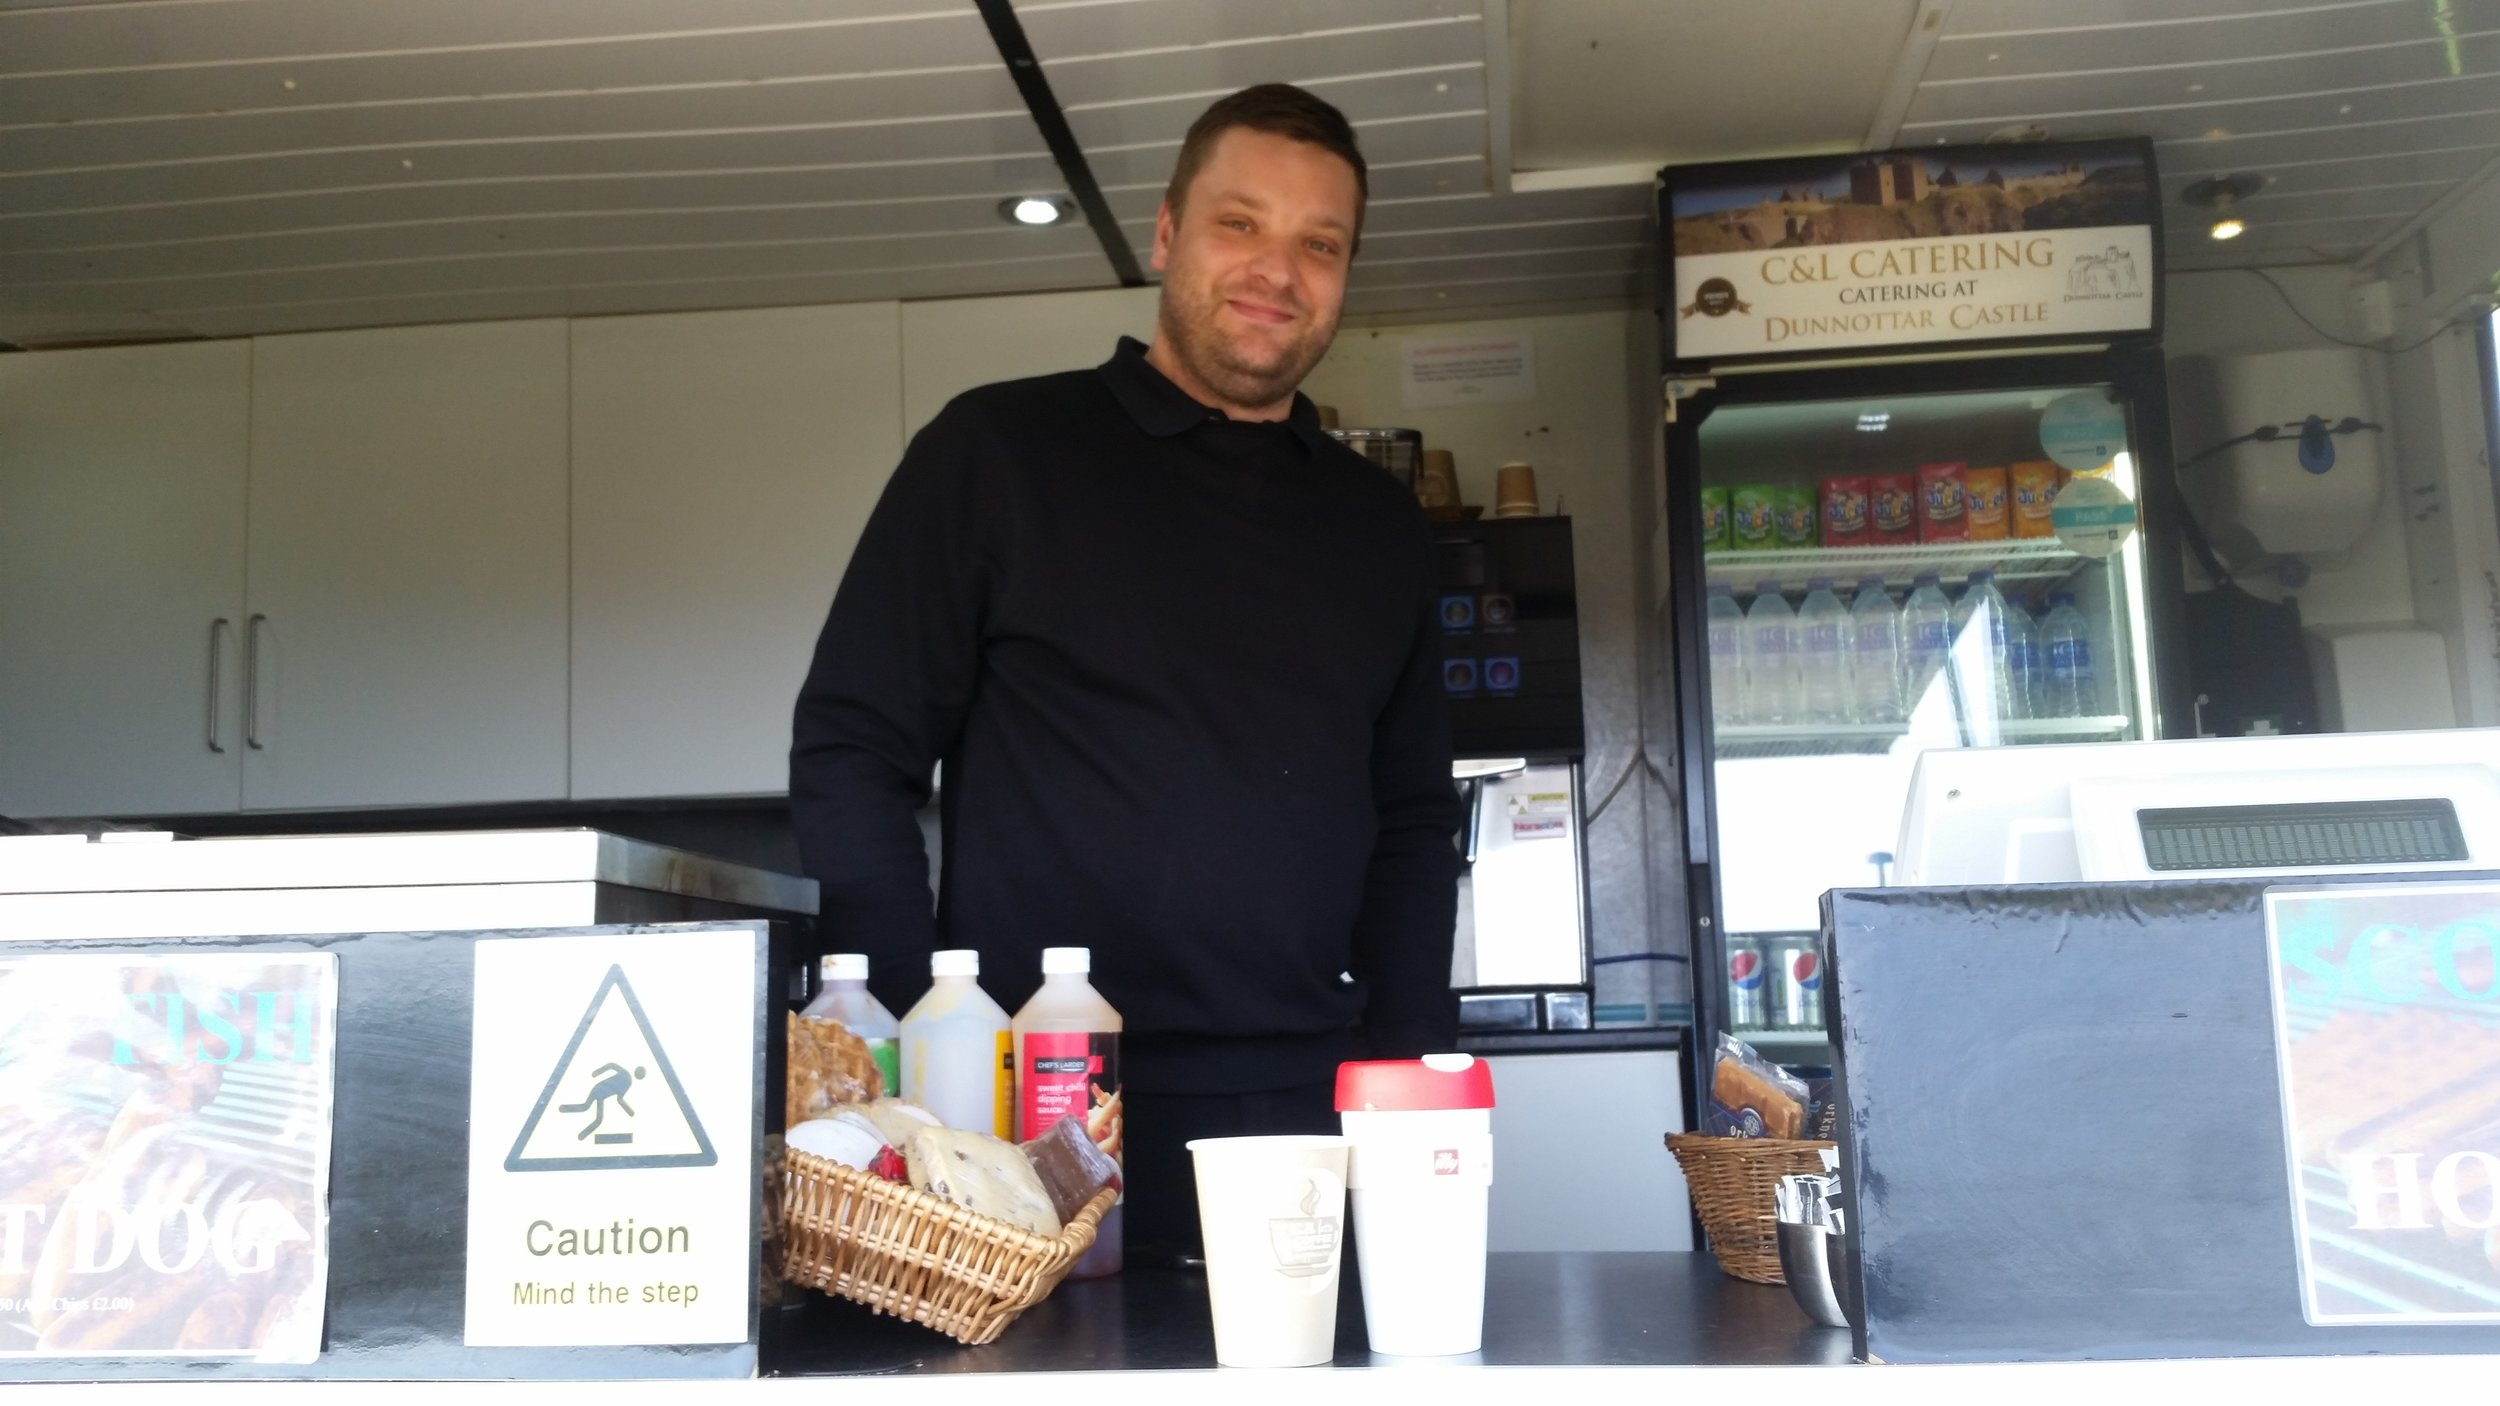 Fantastic grub C & L Catering and super friendly Liam and Colin tell us about their recycling and compostable coffee cups!